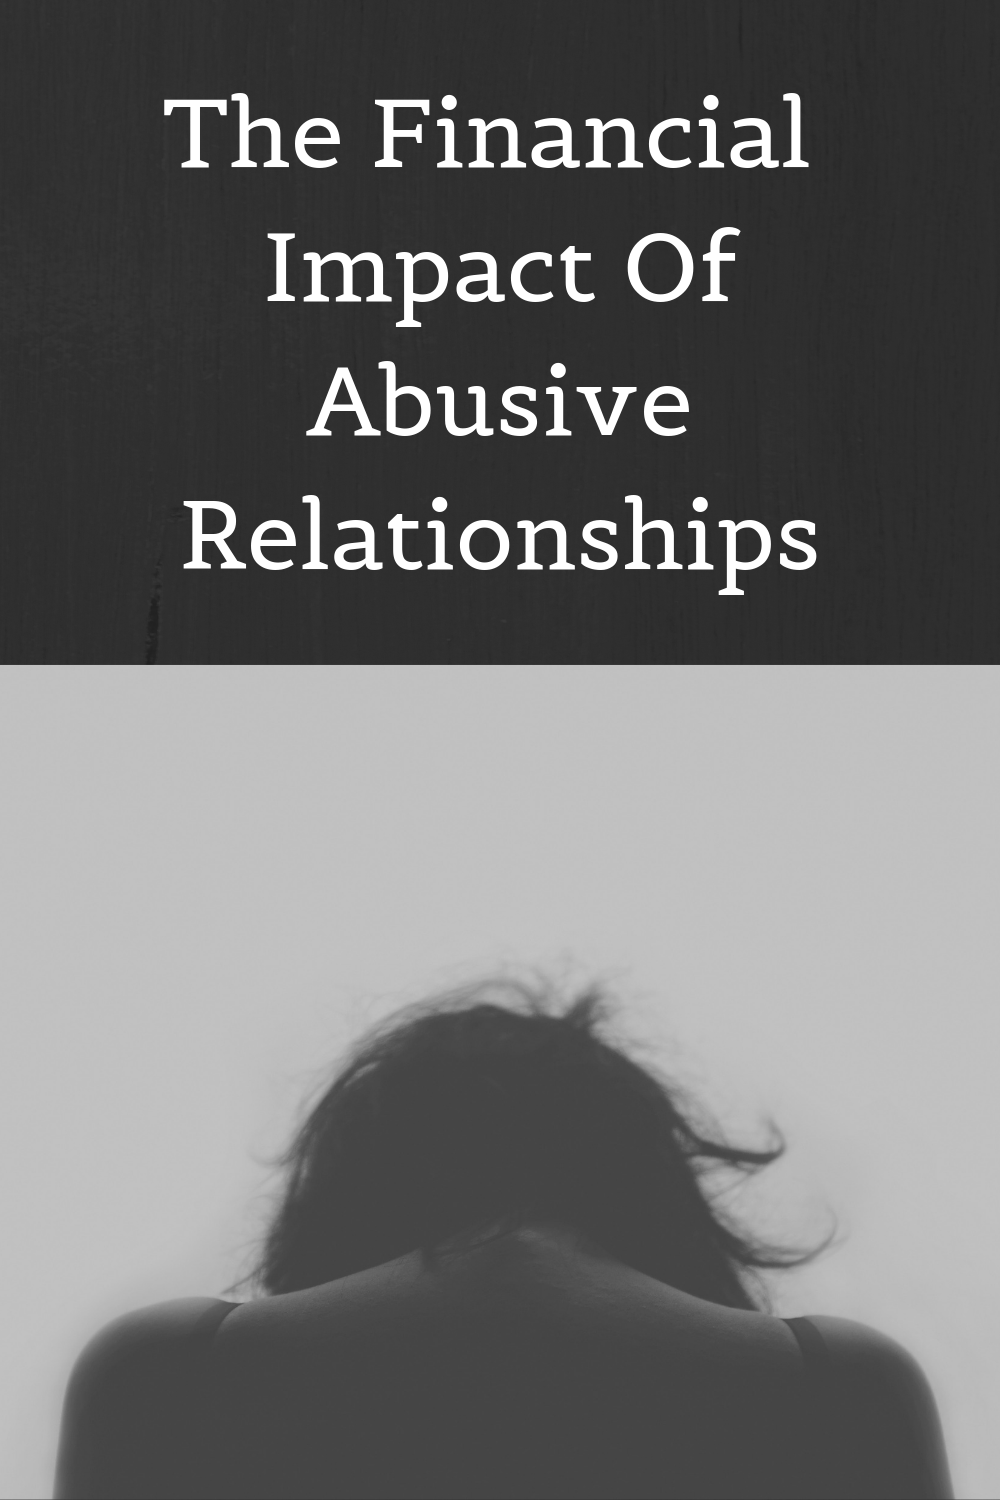 There are many direct and indirect financial impacts of abusive relationships. If you find yourself in one, it does not matter what it costs to walk away- just leave. Come up with a safety plan, and go. I promise it is worth every penny. Here's my story. via @moneygremlin